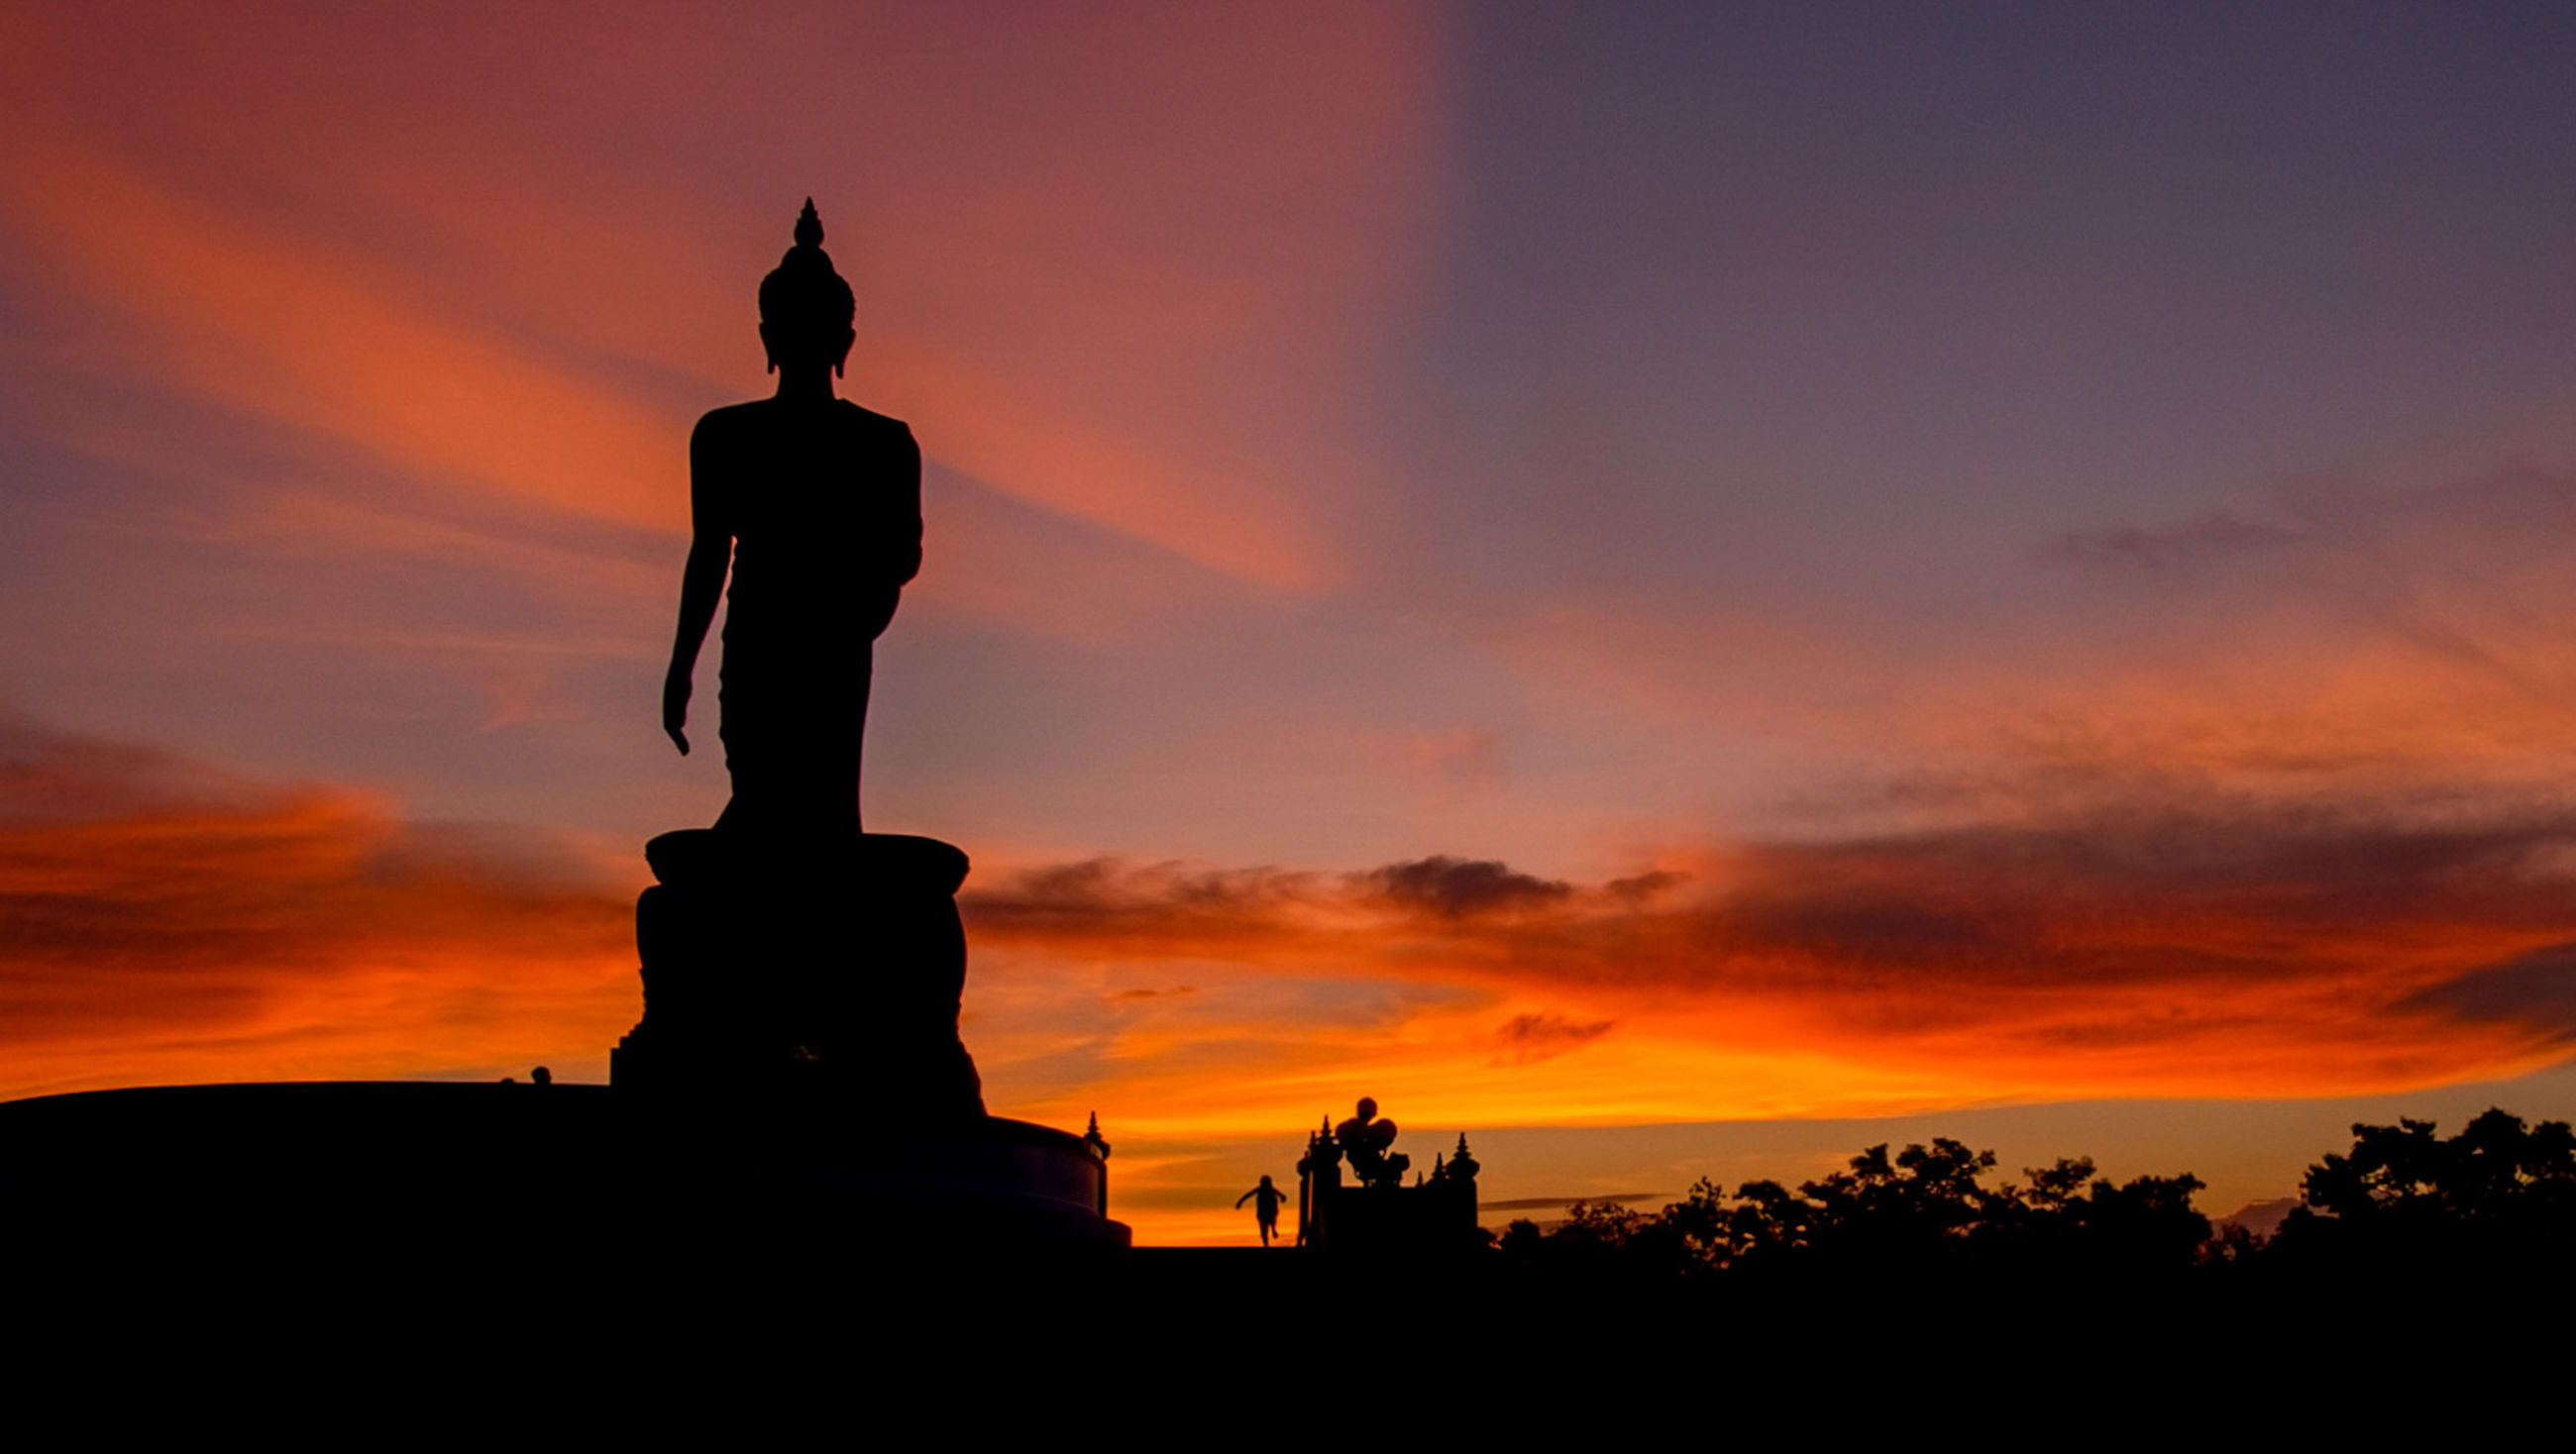 sunset, sky, no people, silhouette, sculpture, statue, outdoors